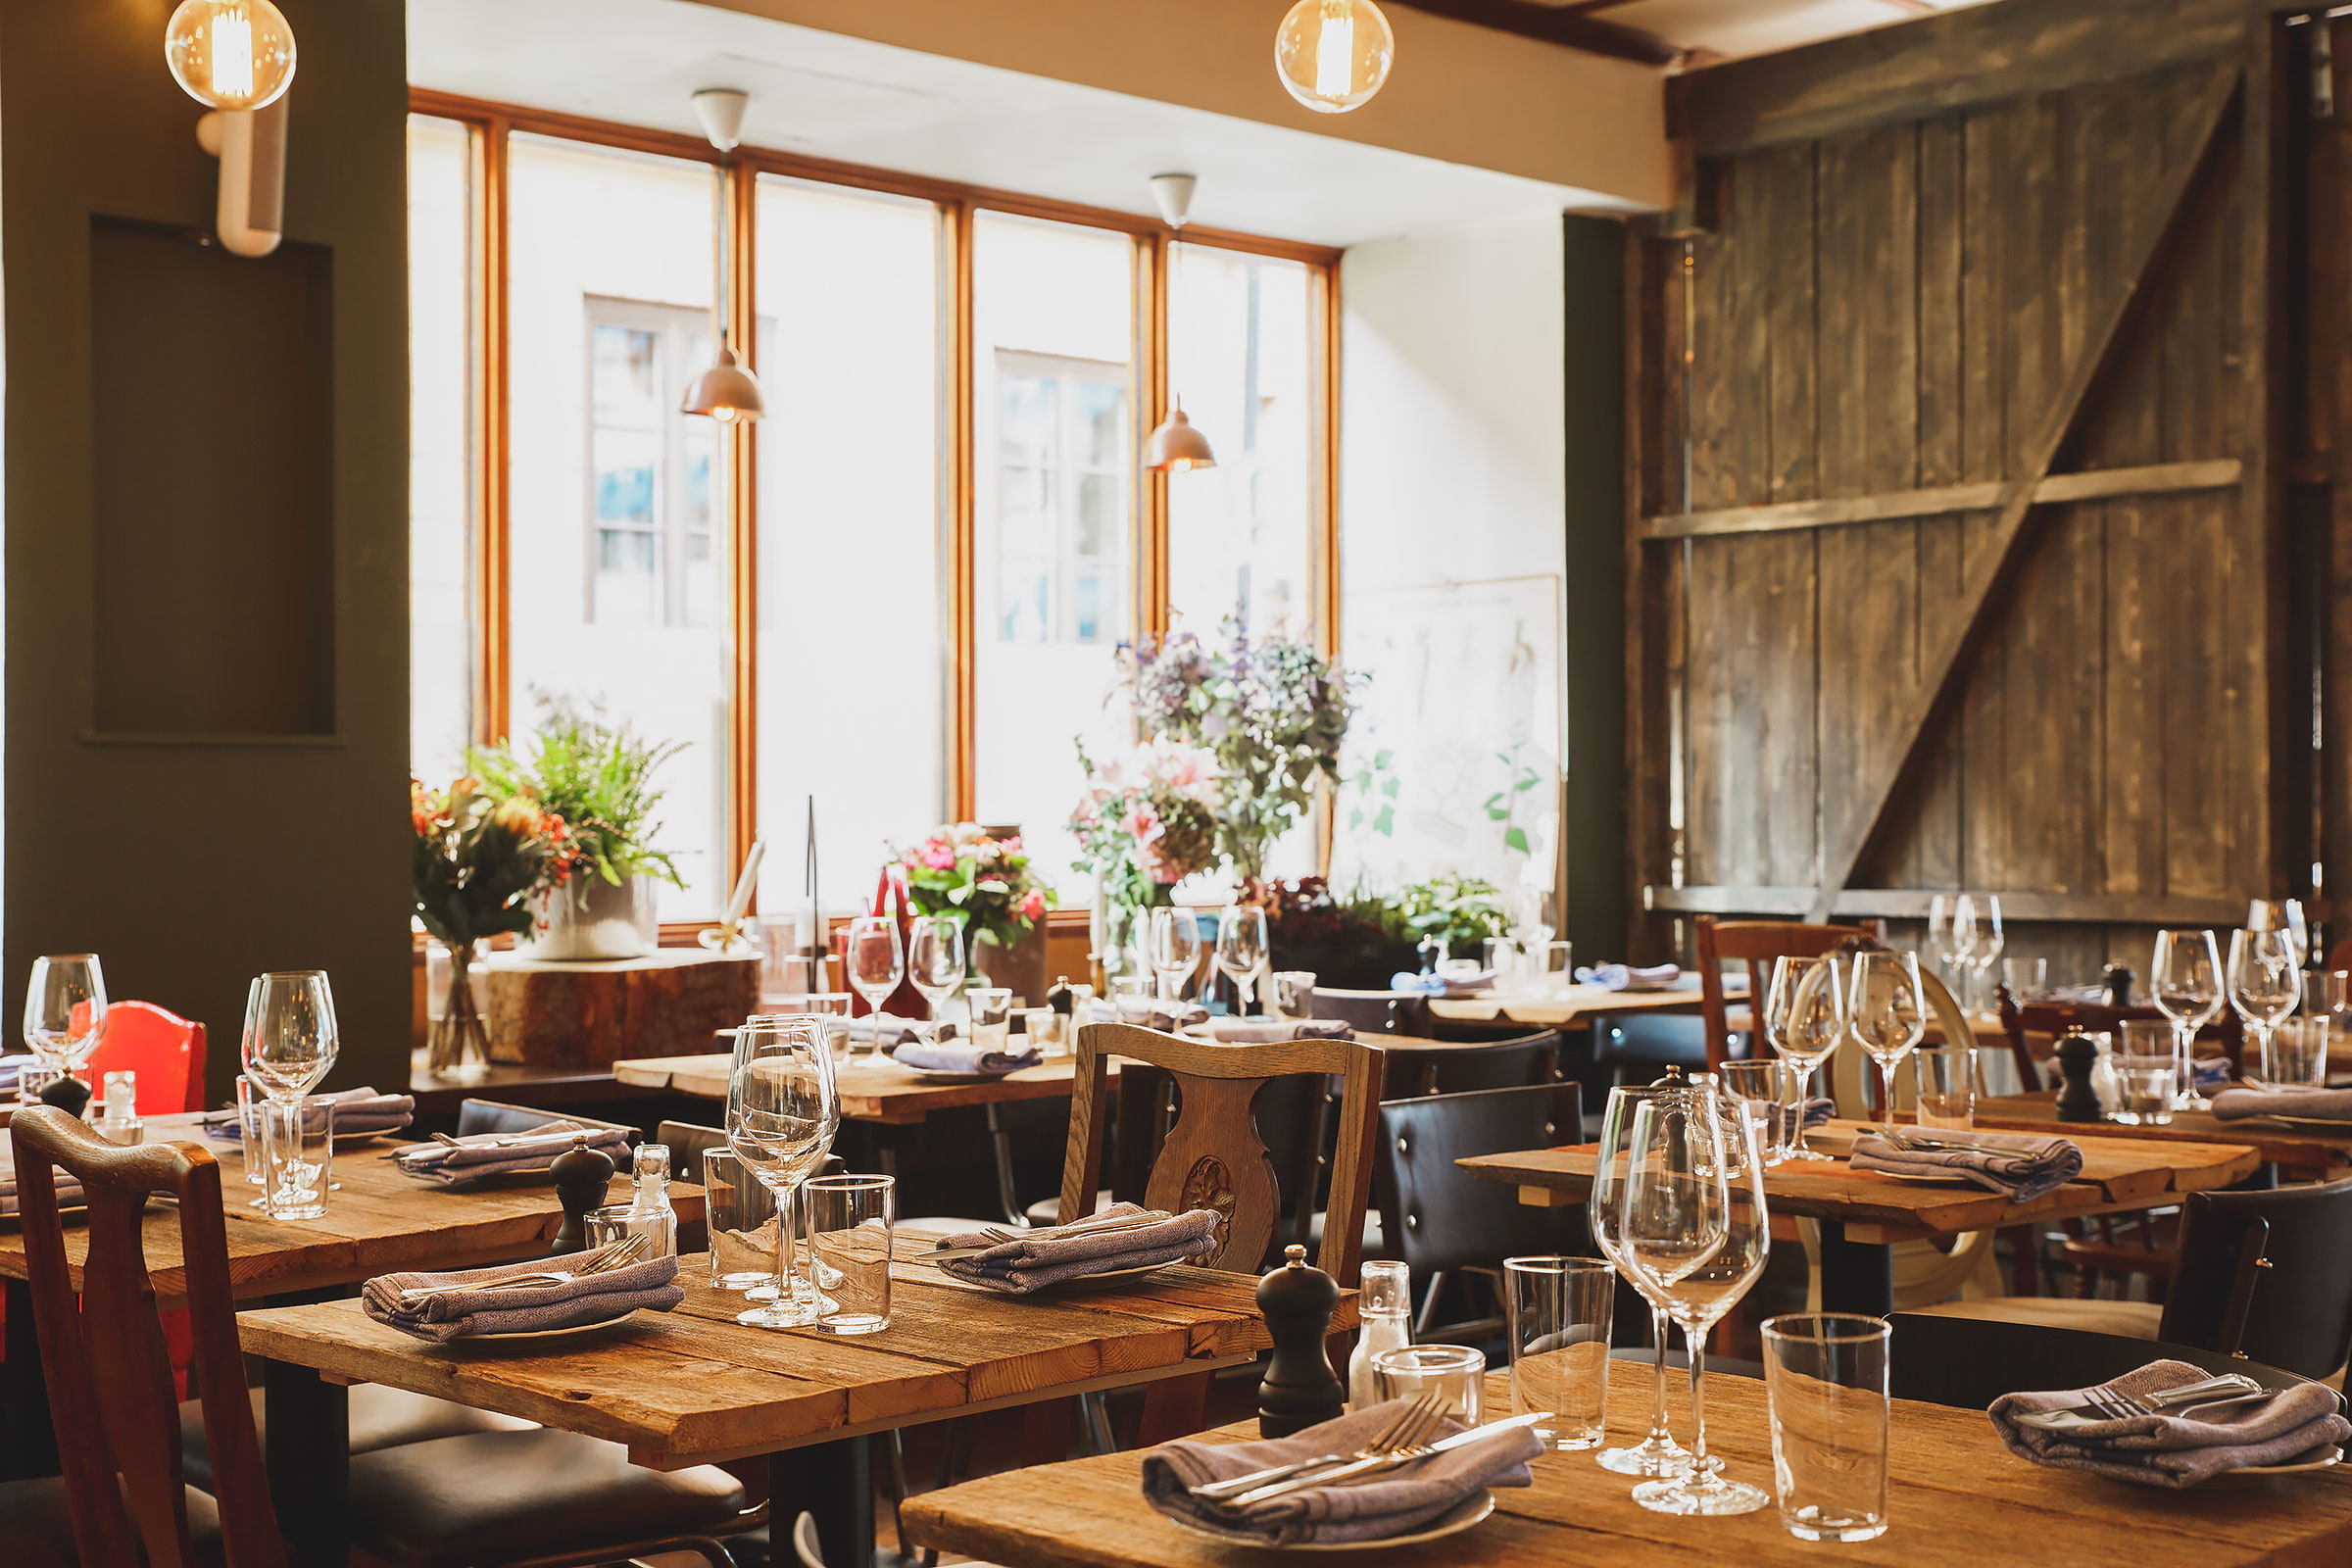 Good value restaurants in the city centre